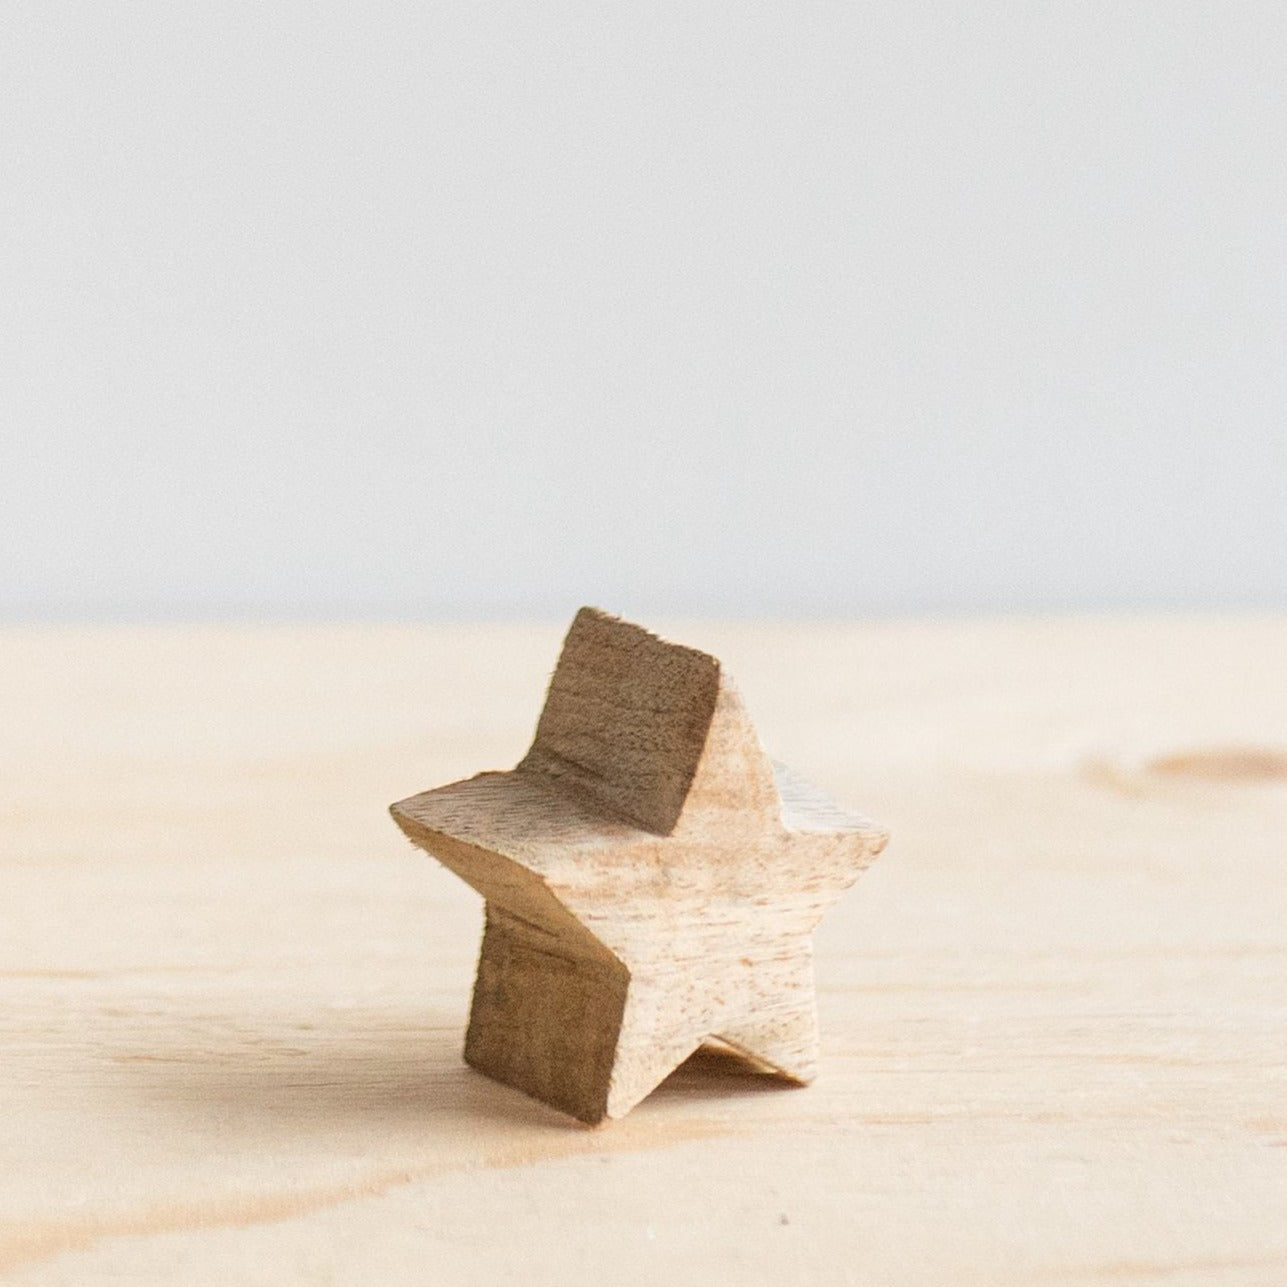 Wood Star Object